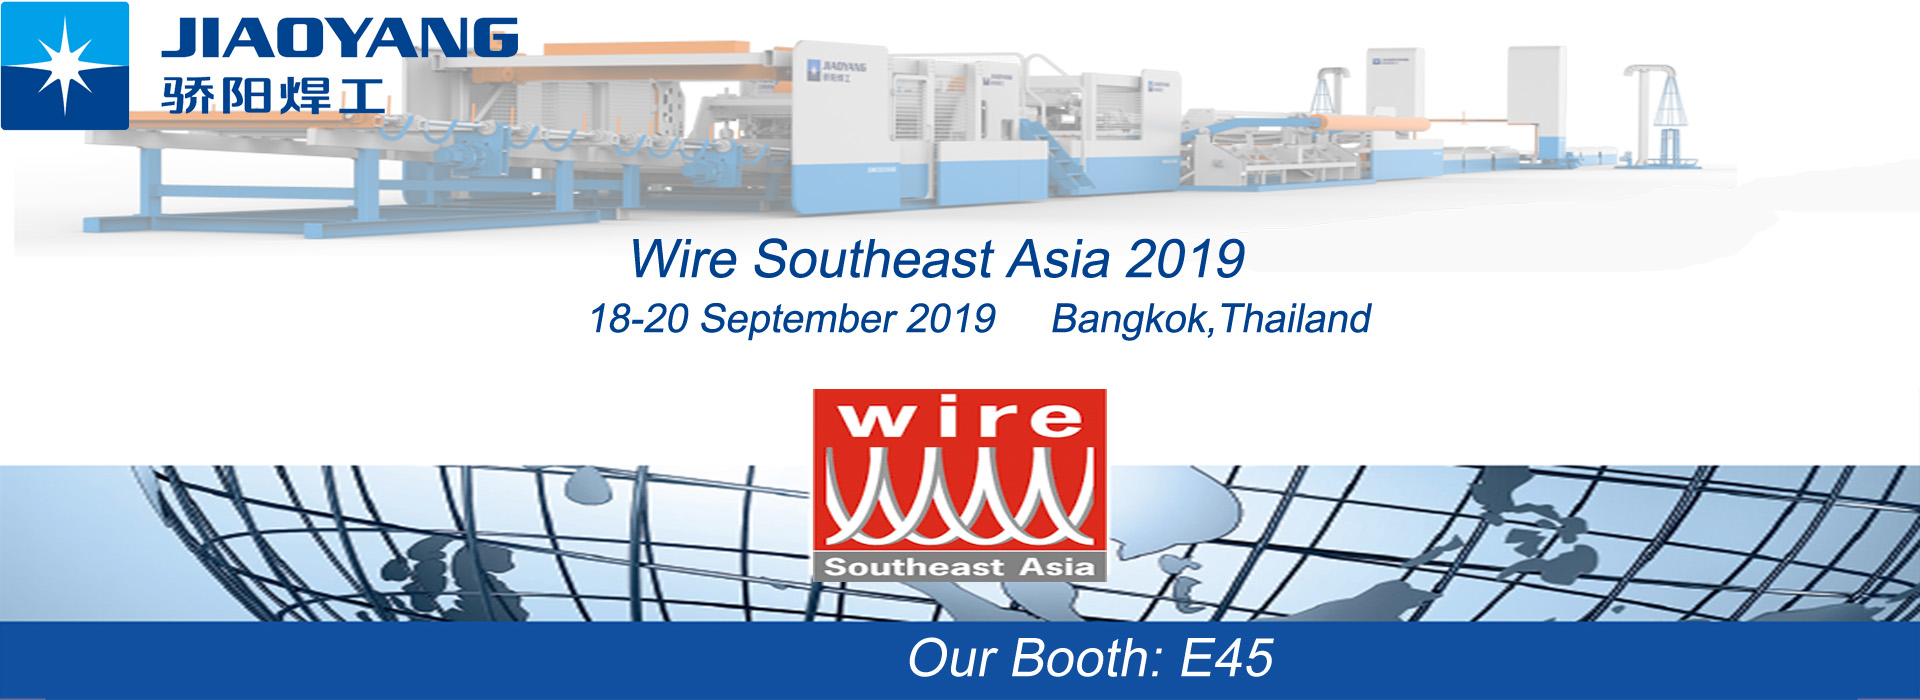 Wire Southeast 2019-1920